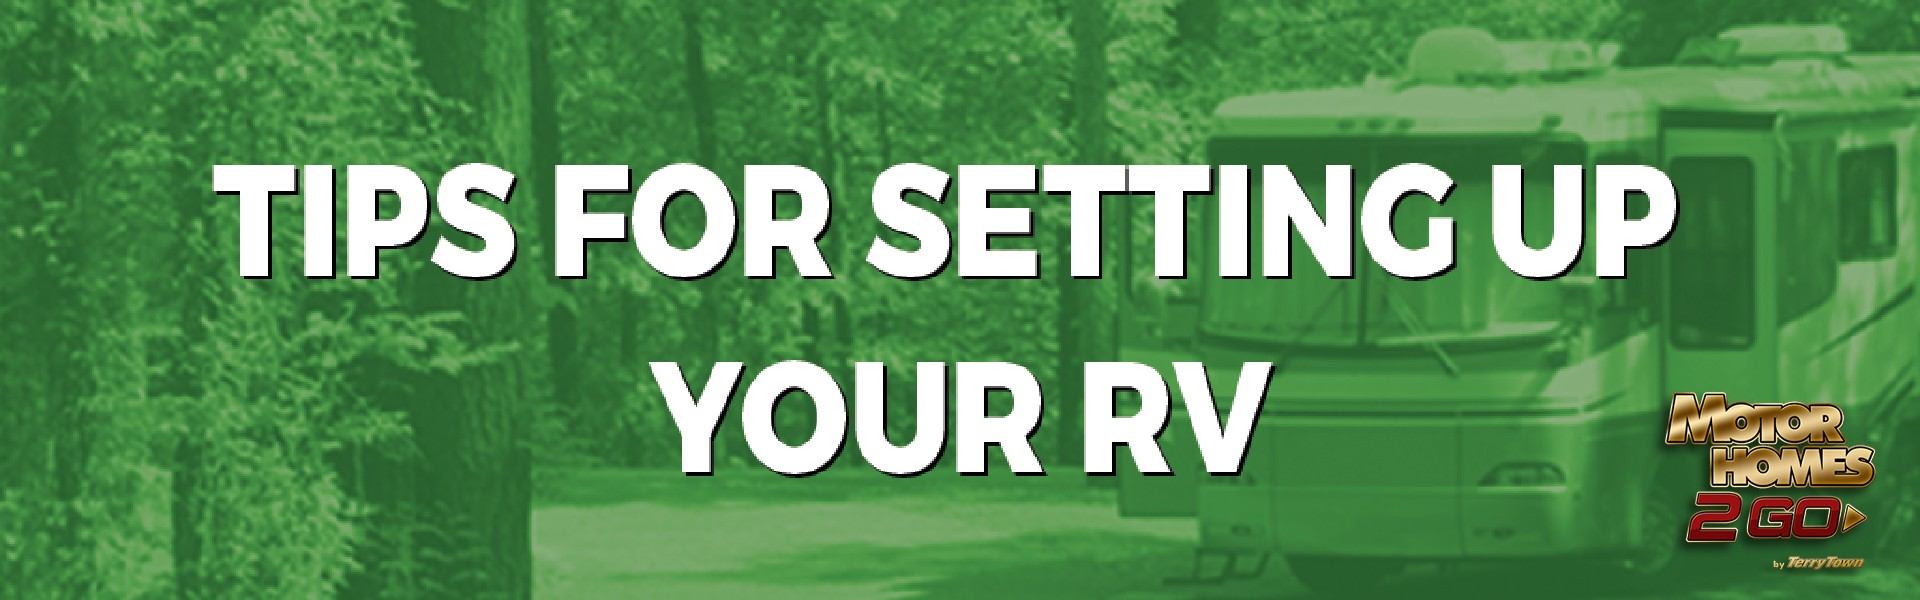 Tips for setting up your RV Banner